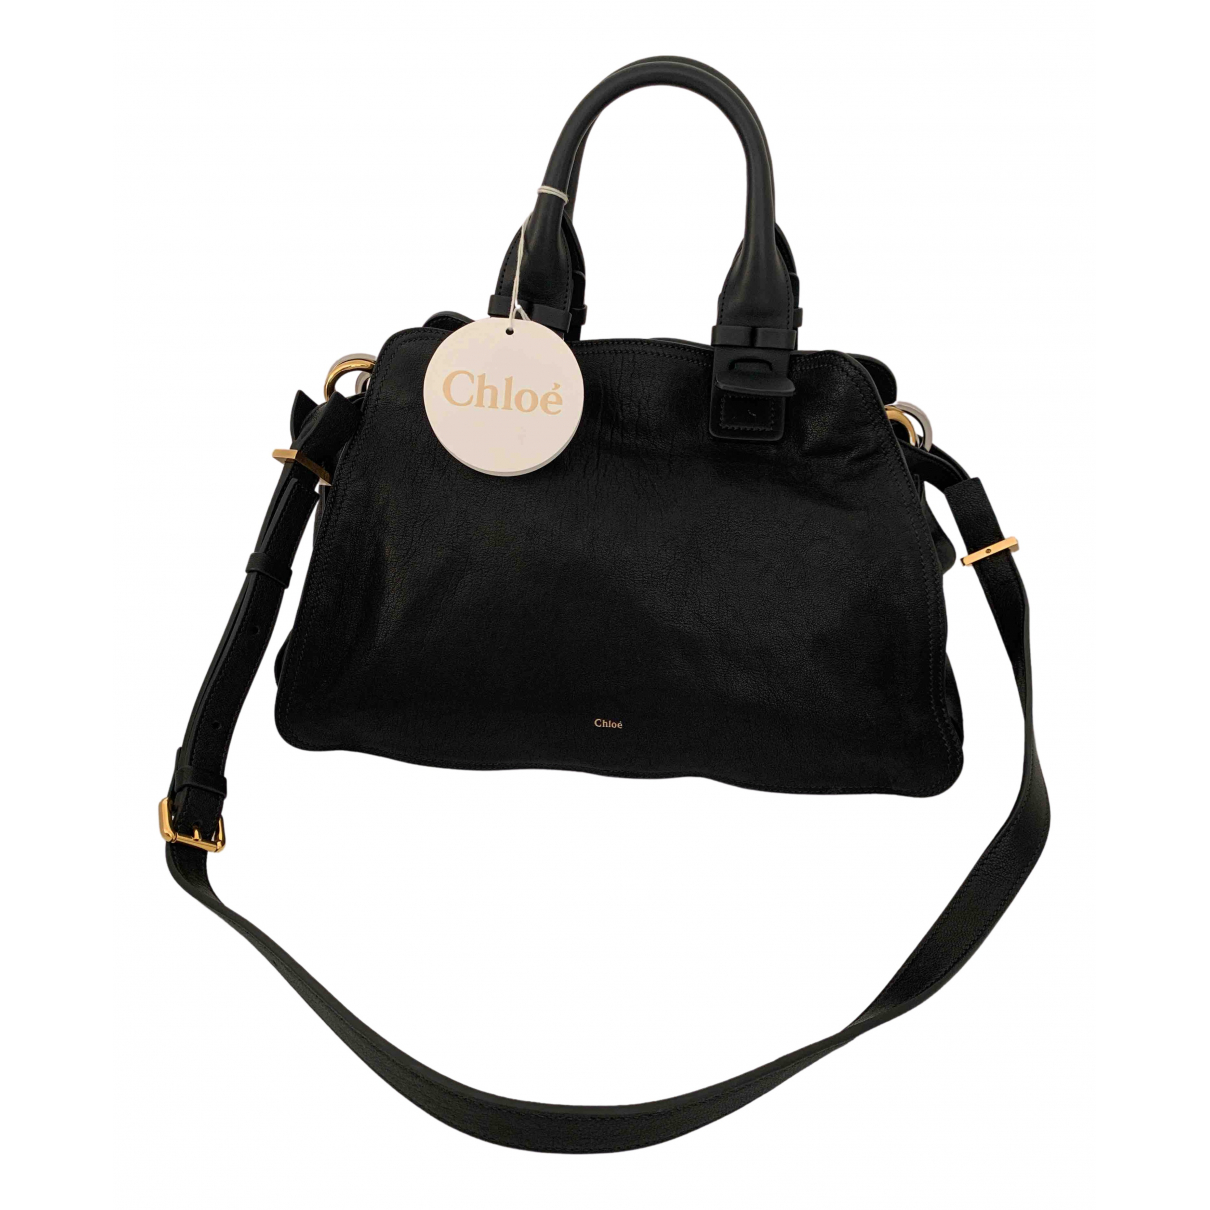 Chloé \N Black Leather handbag for Women \N